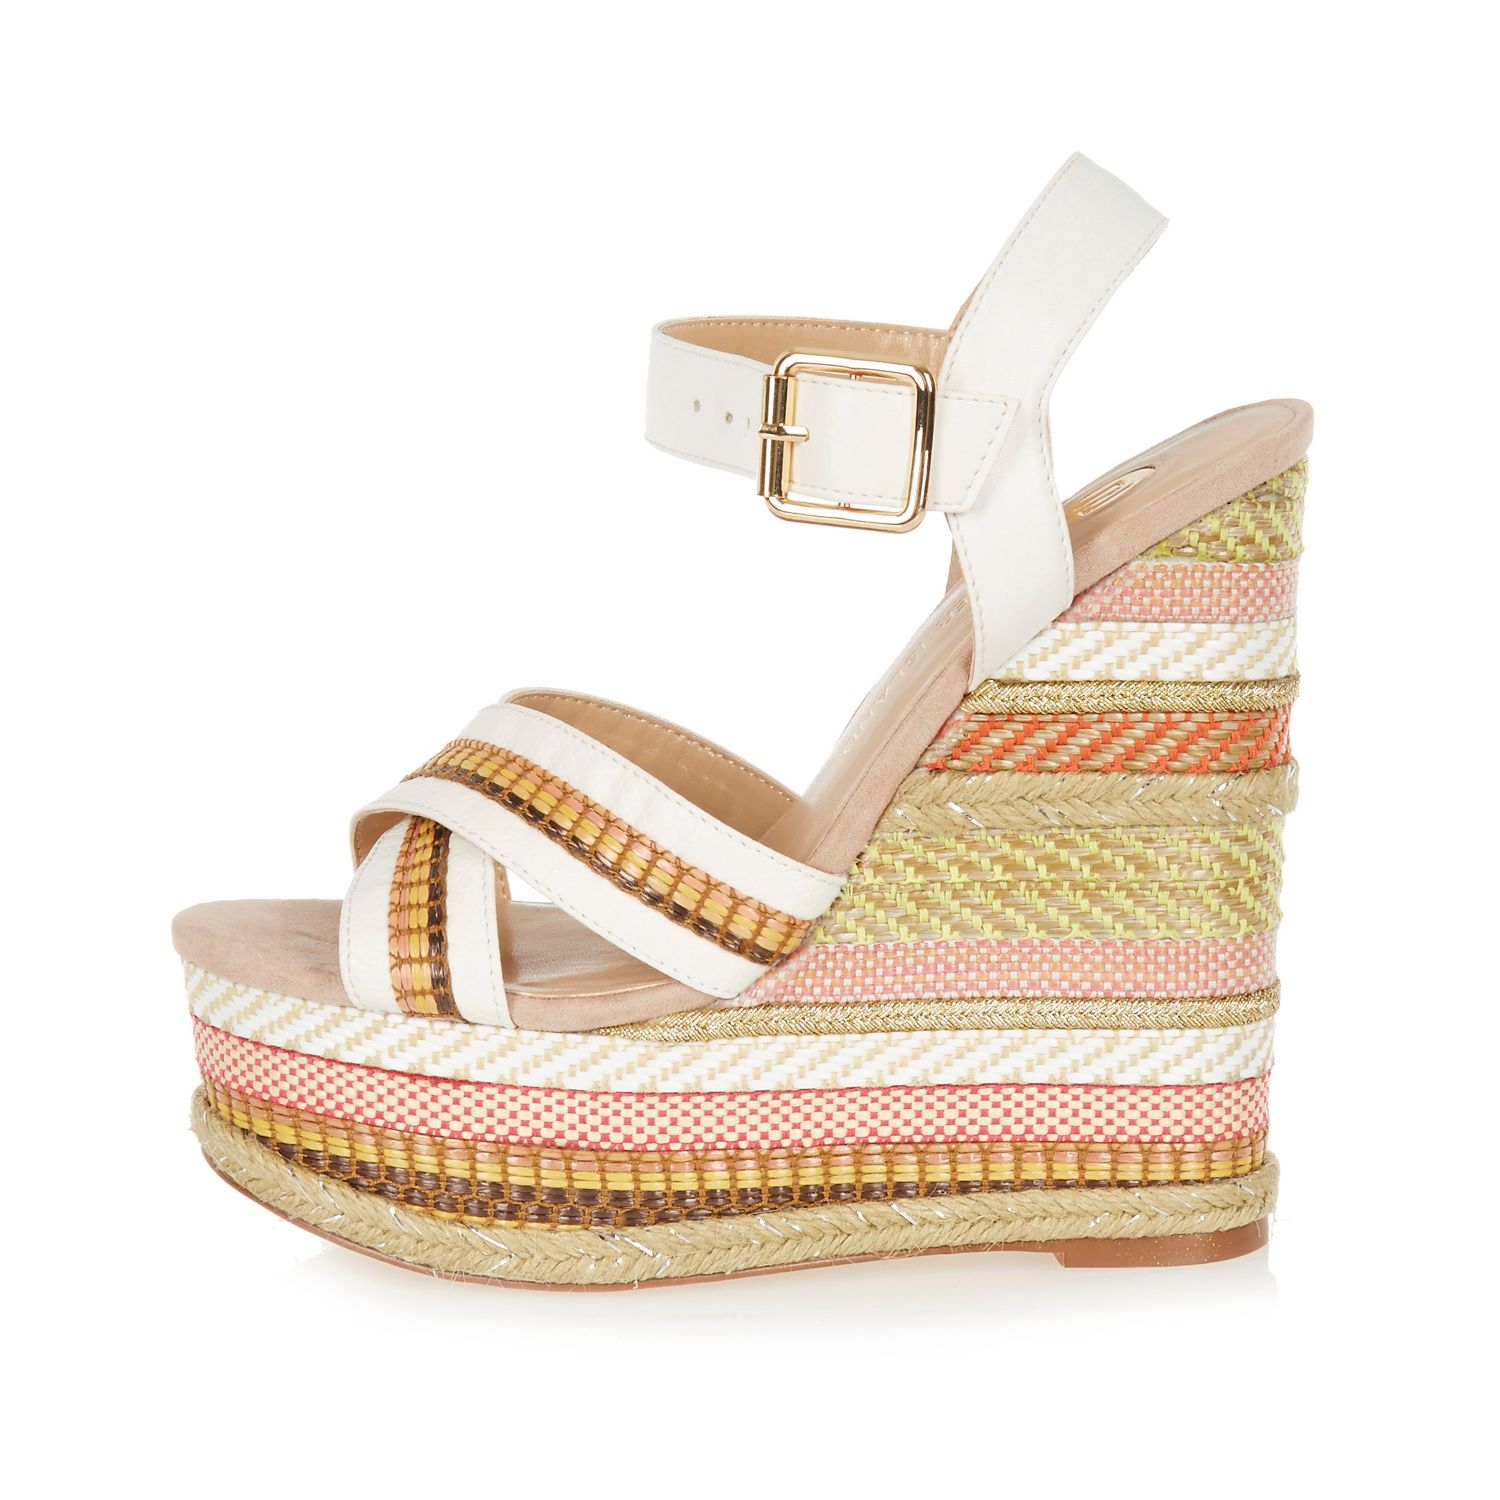 2bca0aca498 Lyst - River Island White Print Espadrille Wedges in White